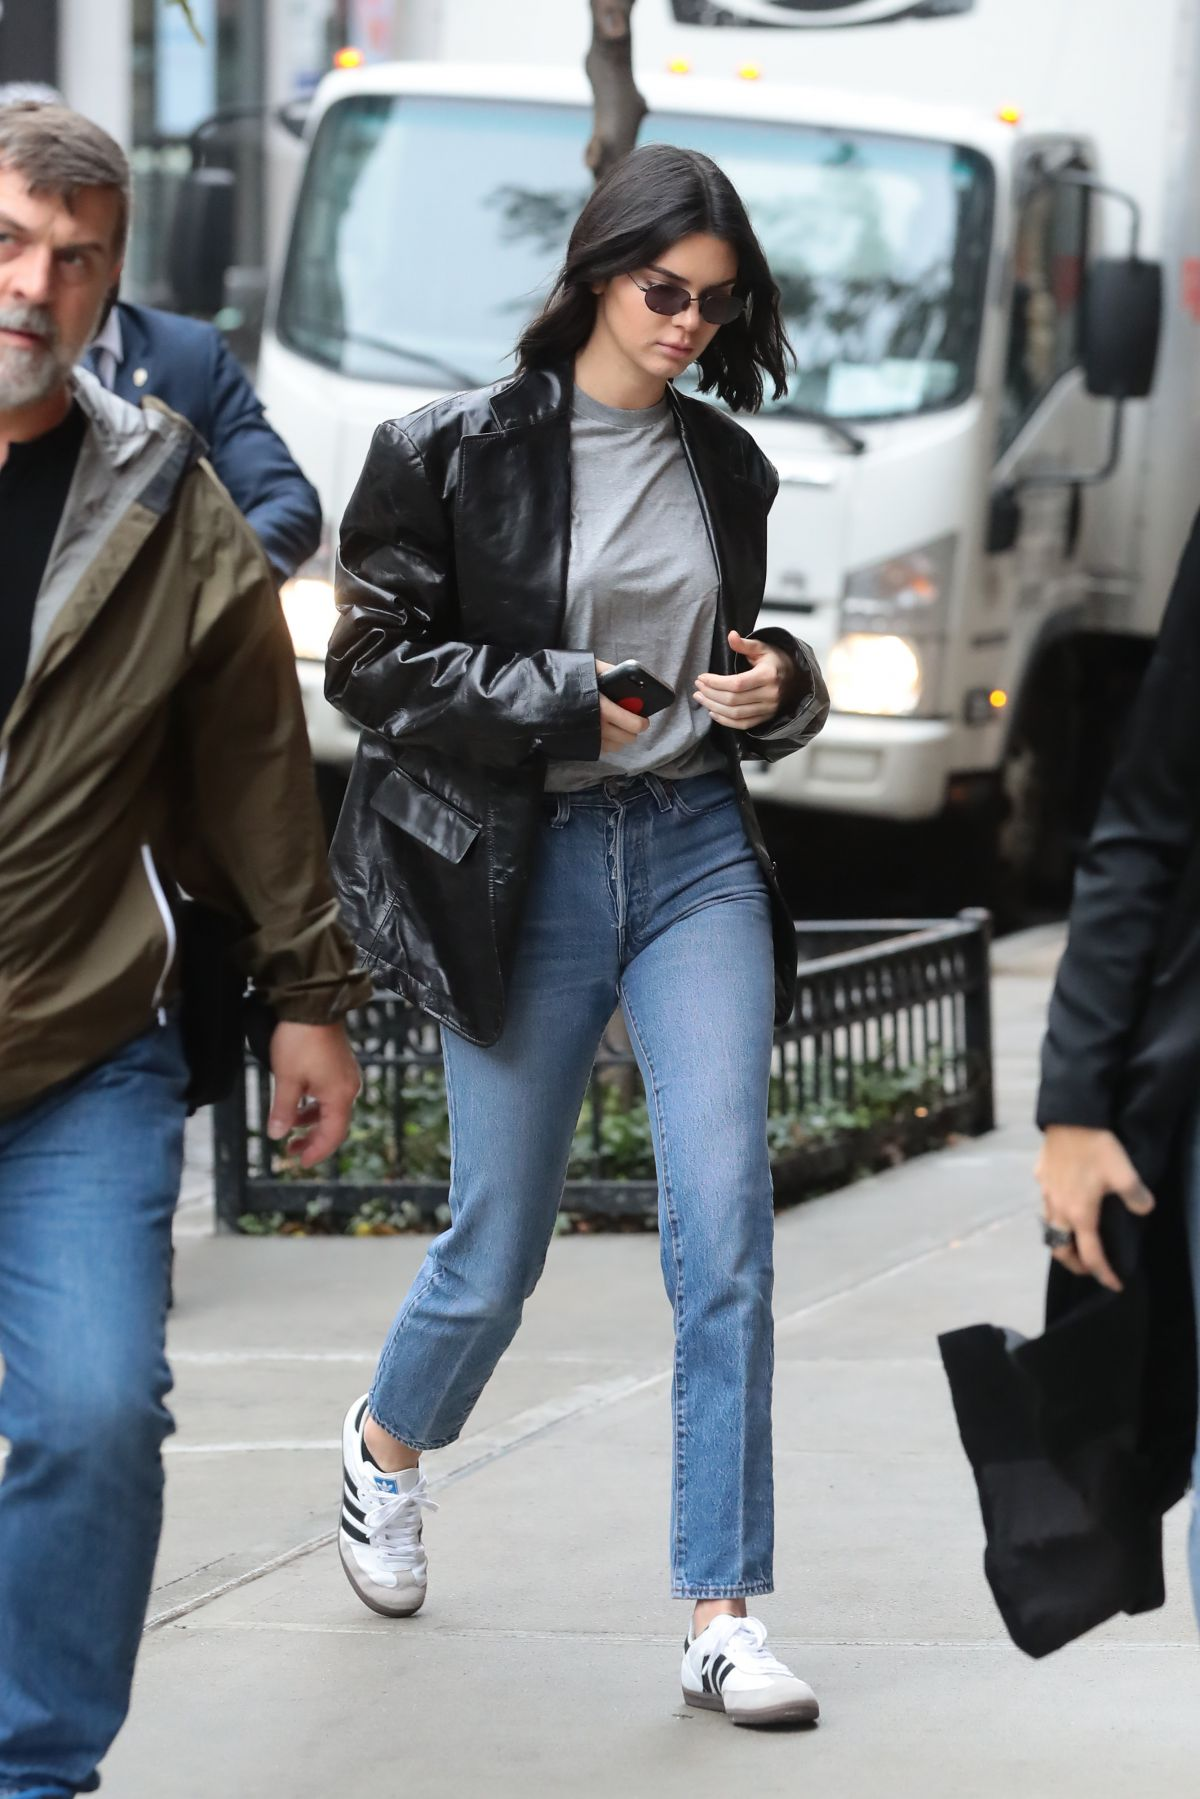 Kendall Jenner Heading to an Adidas photo shoot in NYC